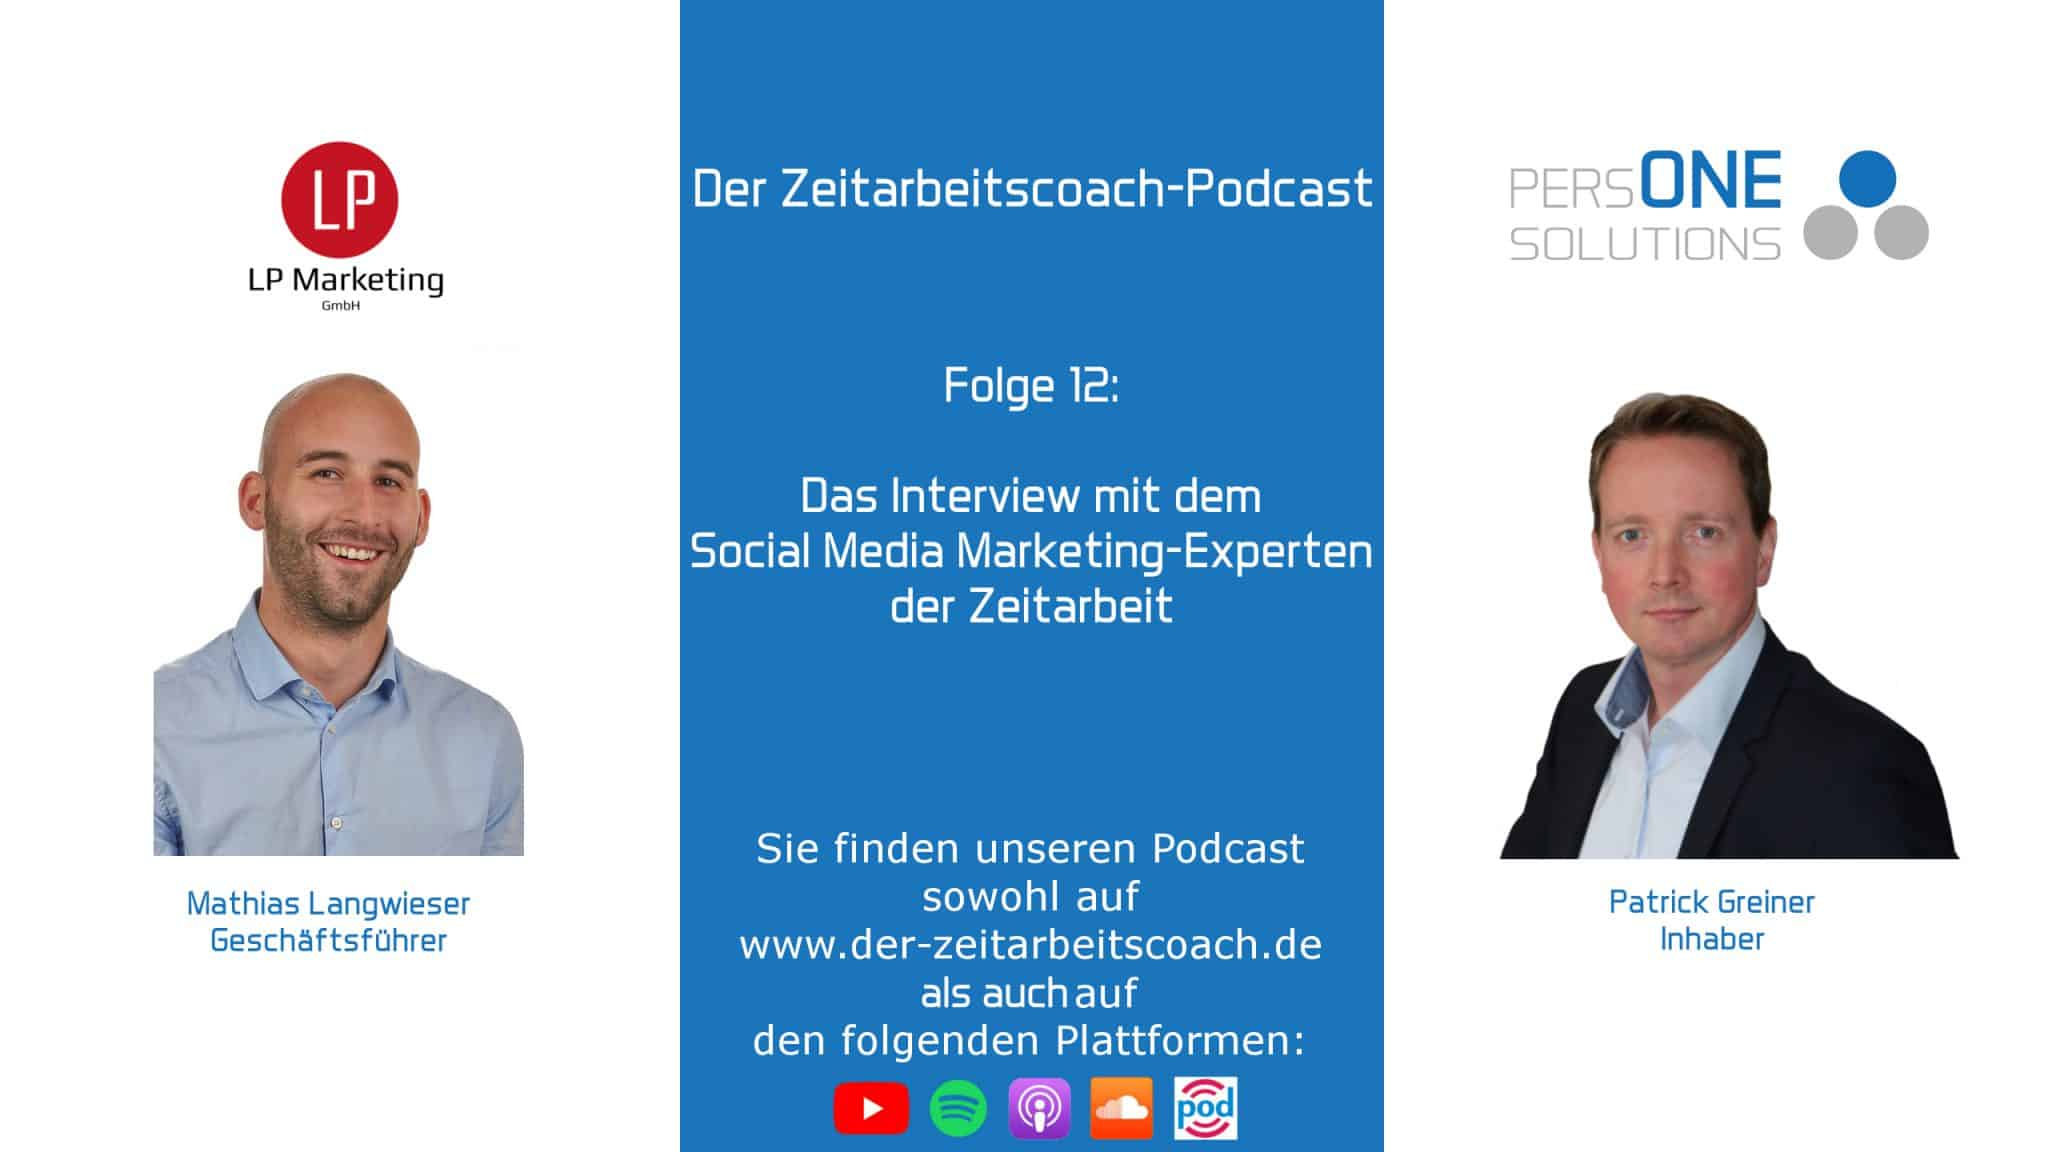 Der Social Media Marketing-Experte der Zeitarbeit